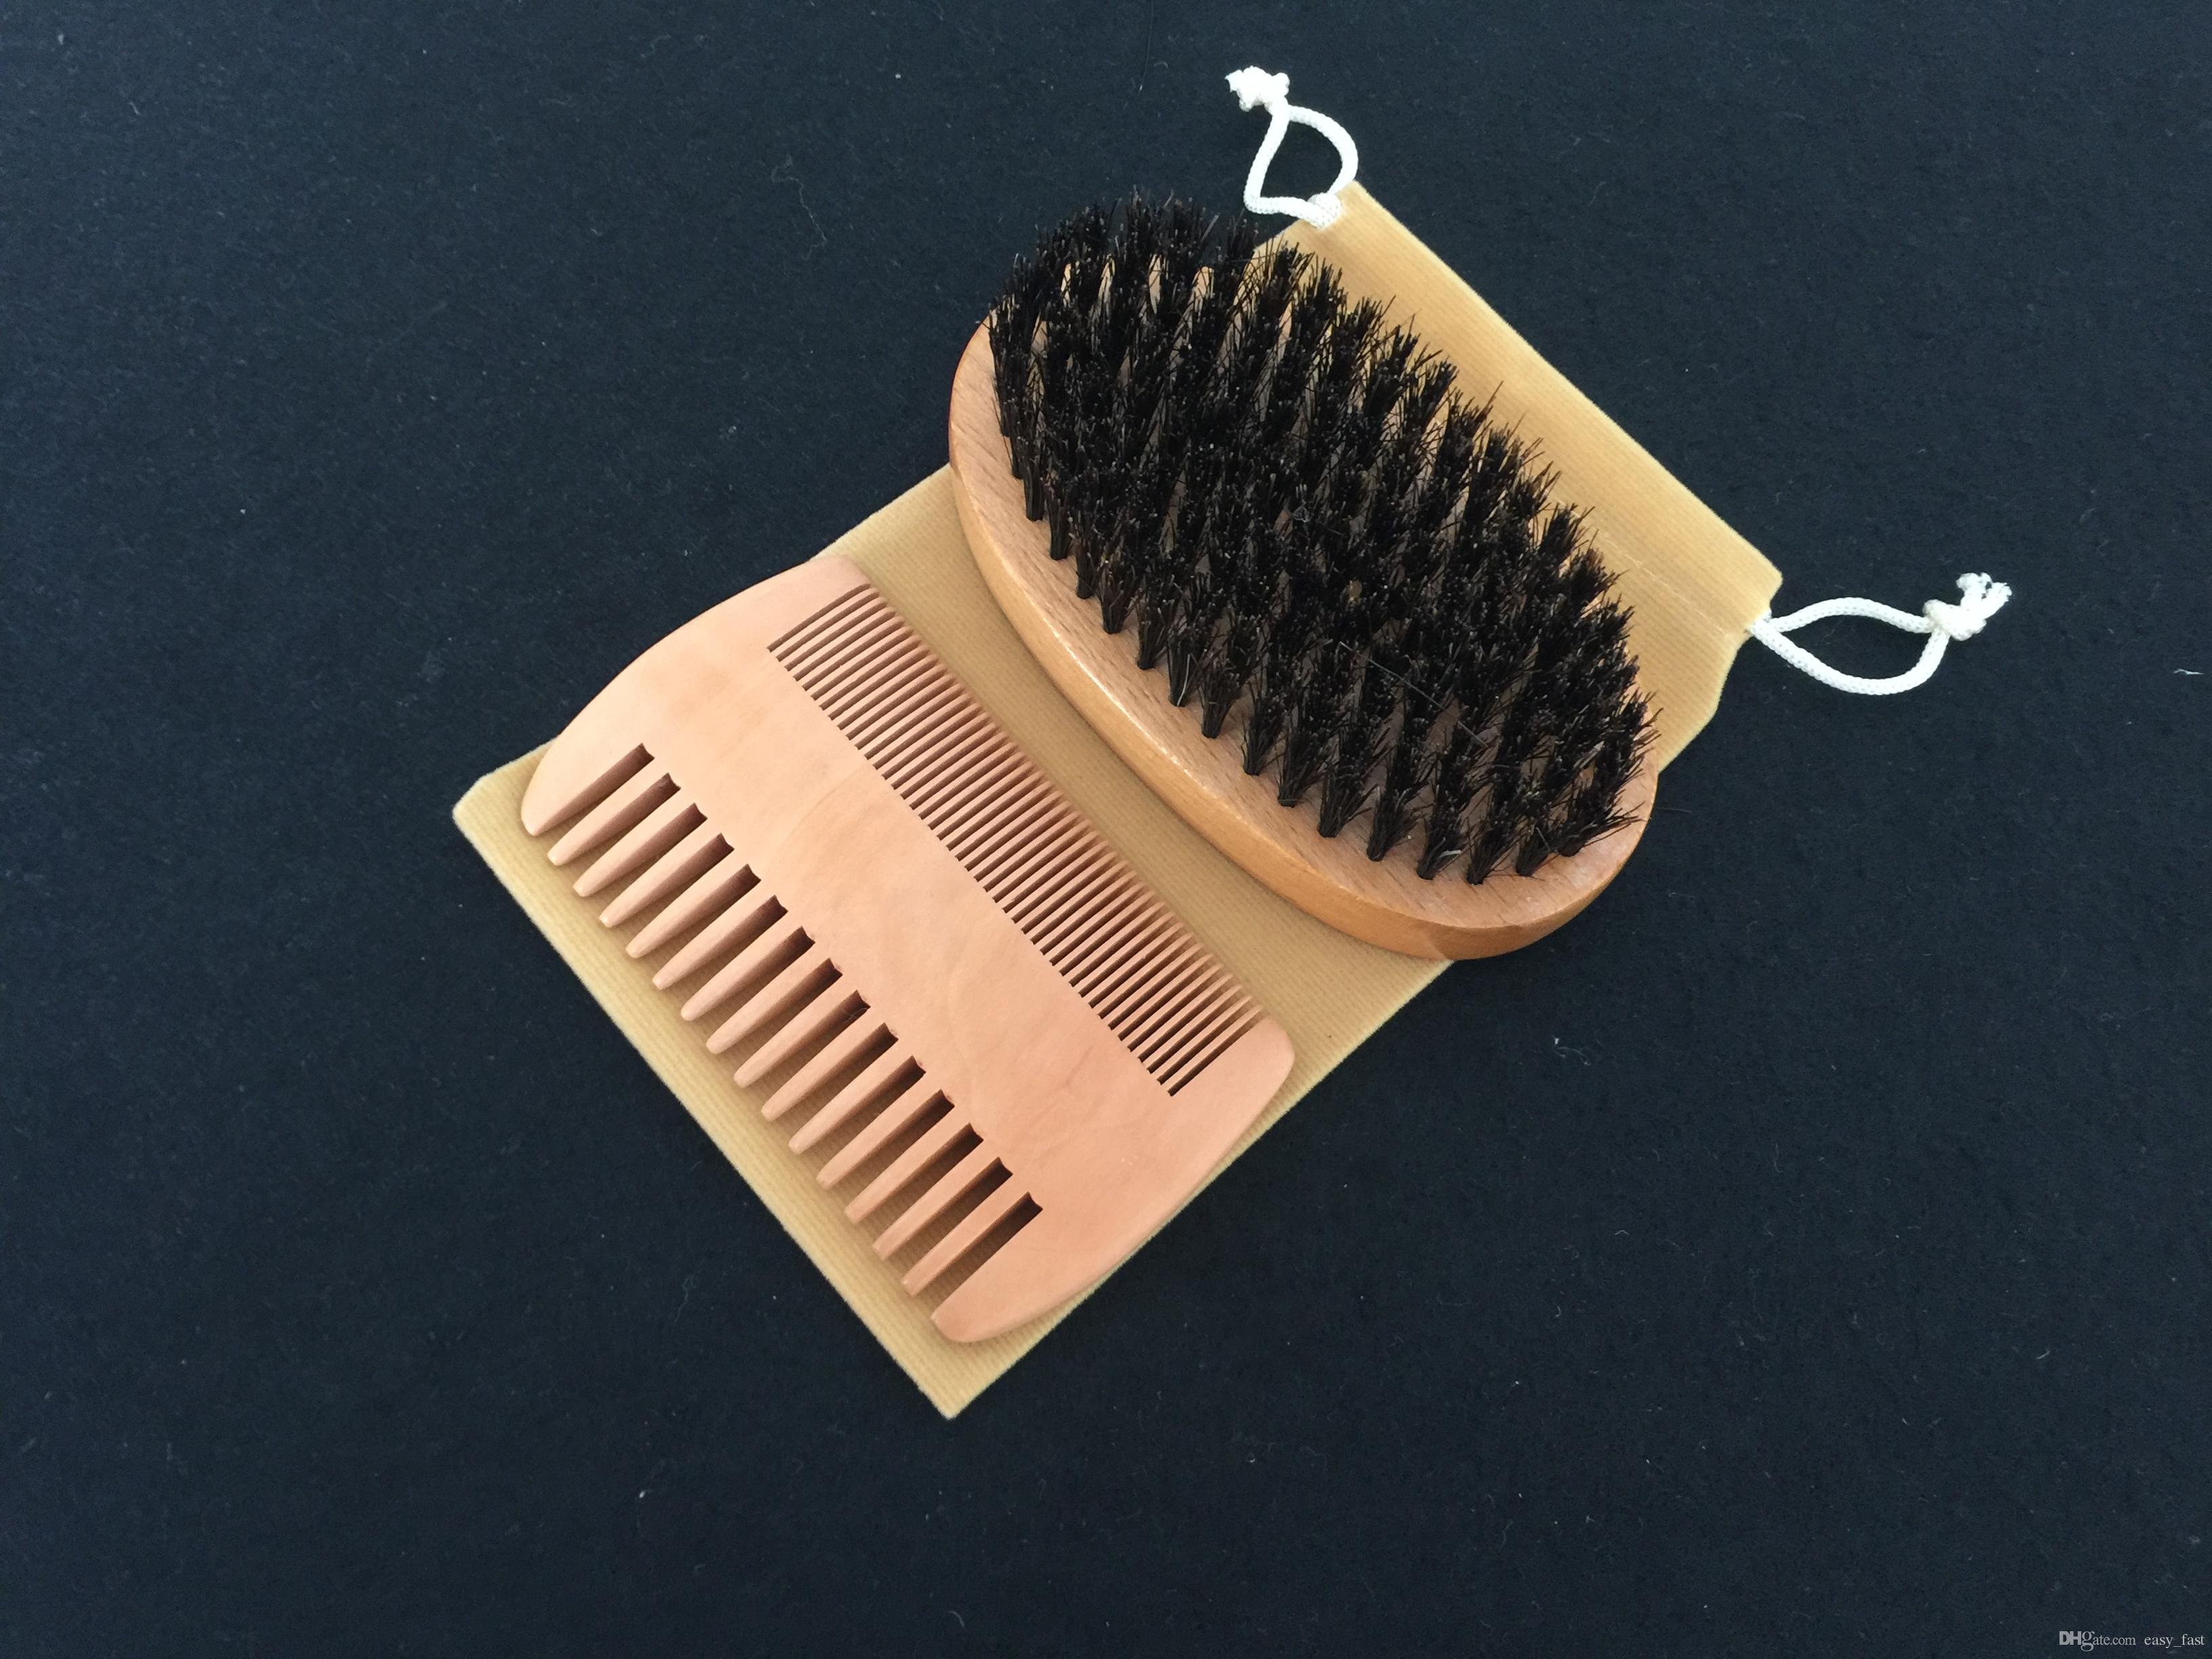 New 3in1 Boar Bristle Beard Brush & Peach Wood Comb Cotton Bag Set Bearded Men Travel Carry Makeup Fashion Hair Care Styling Grooming Tool